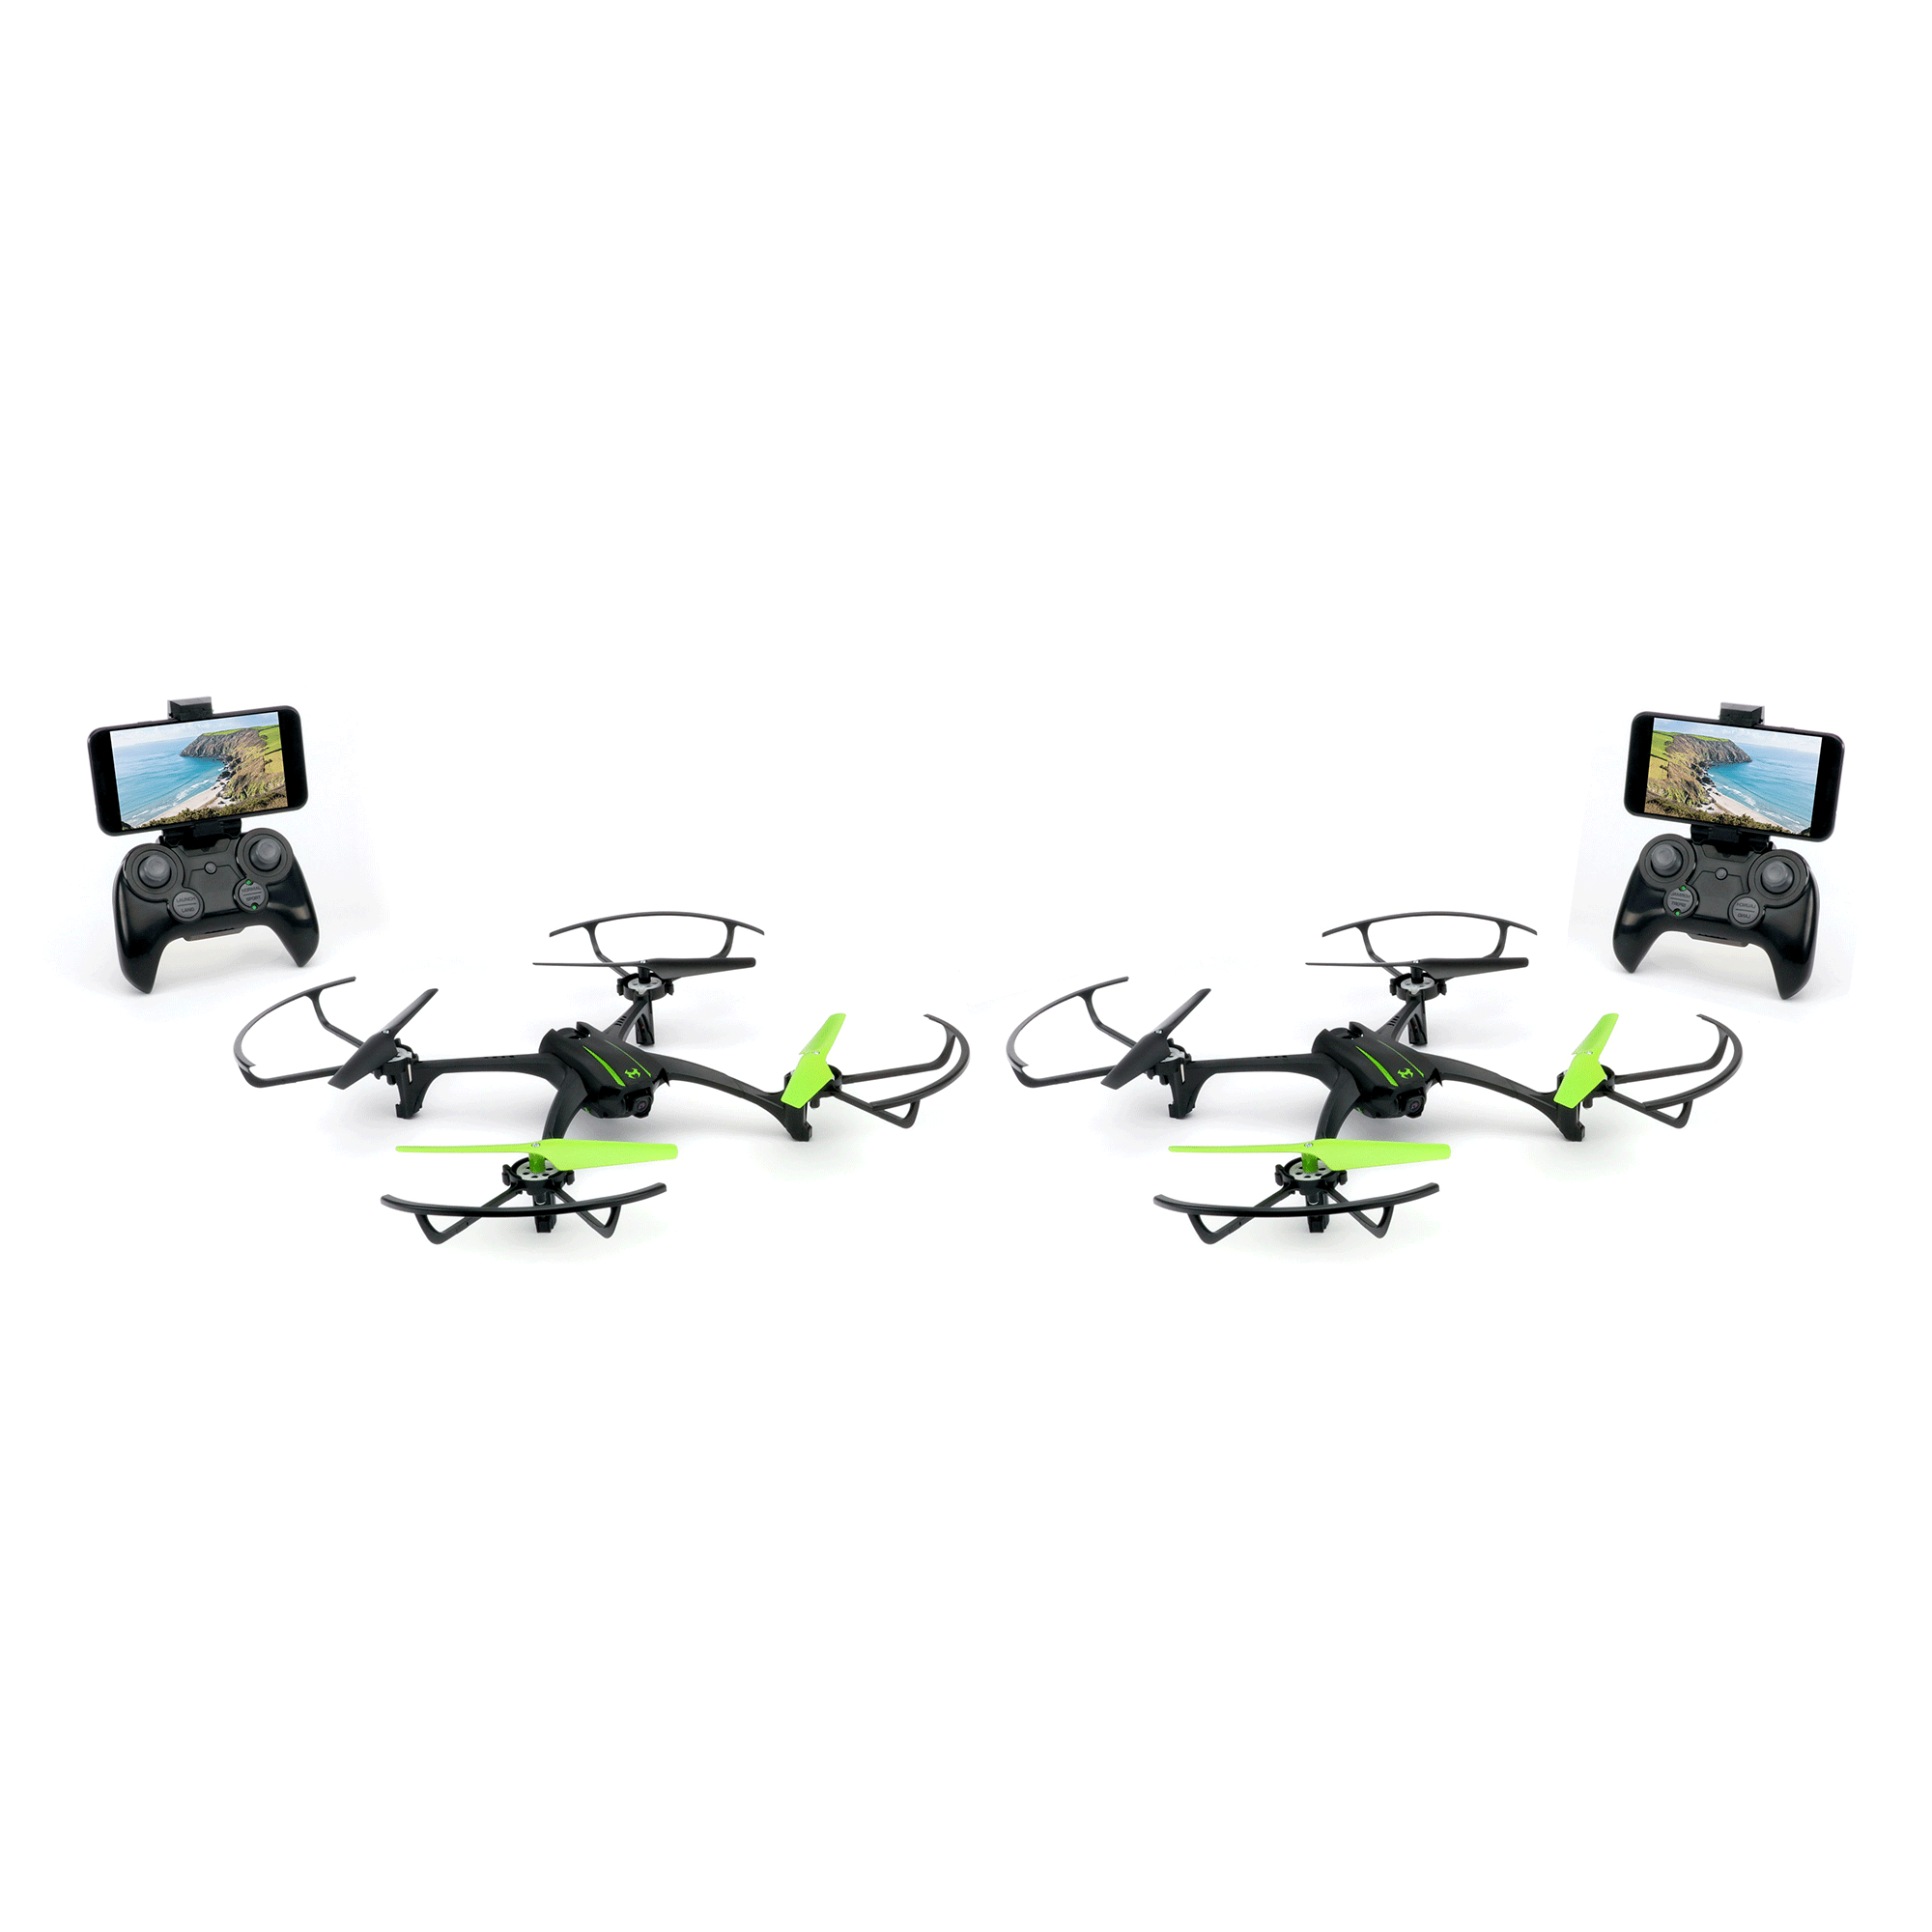 Sky Viper Scout Live Streaming & Video Recording RC Drone